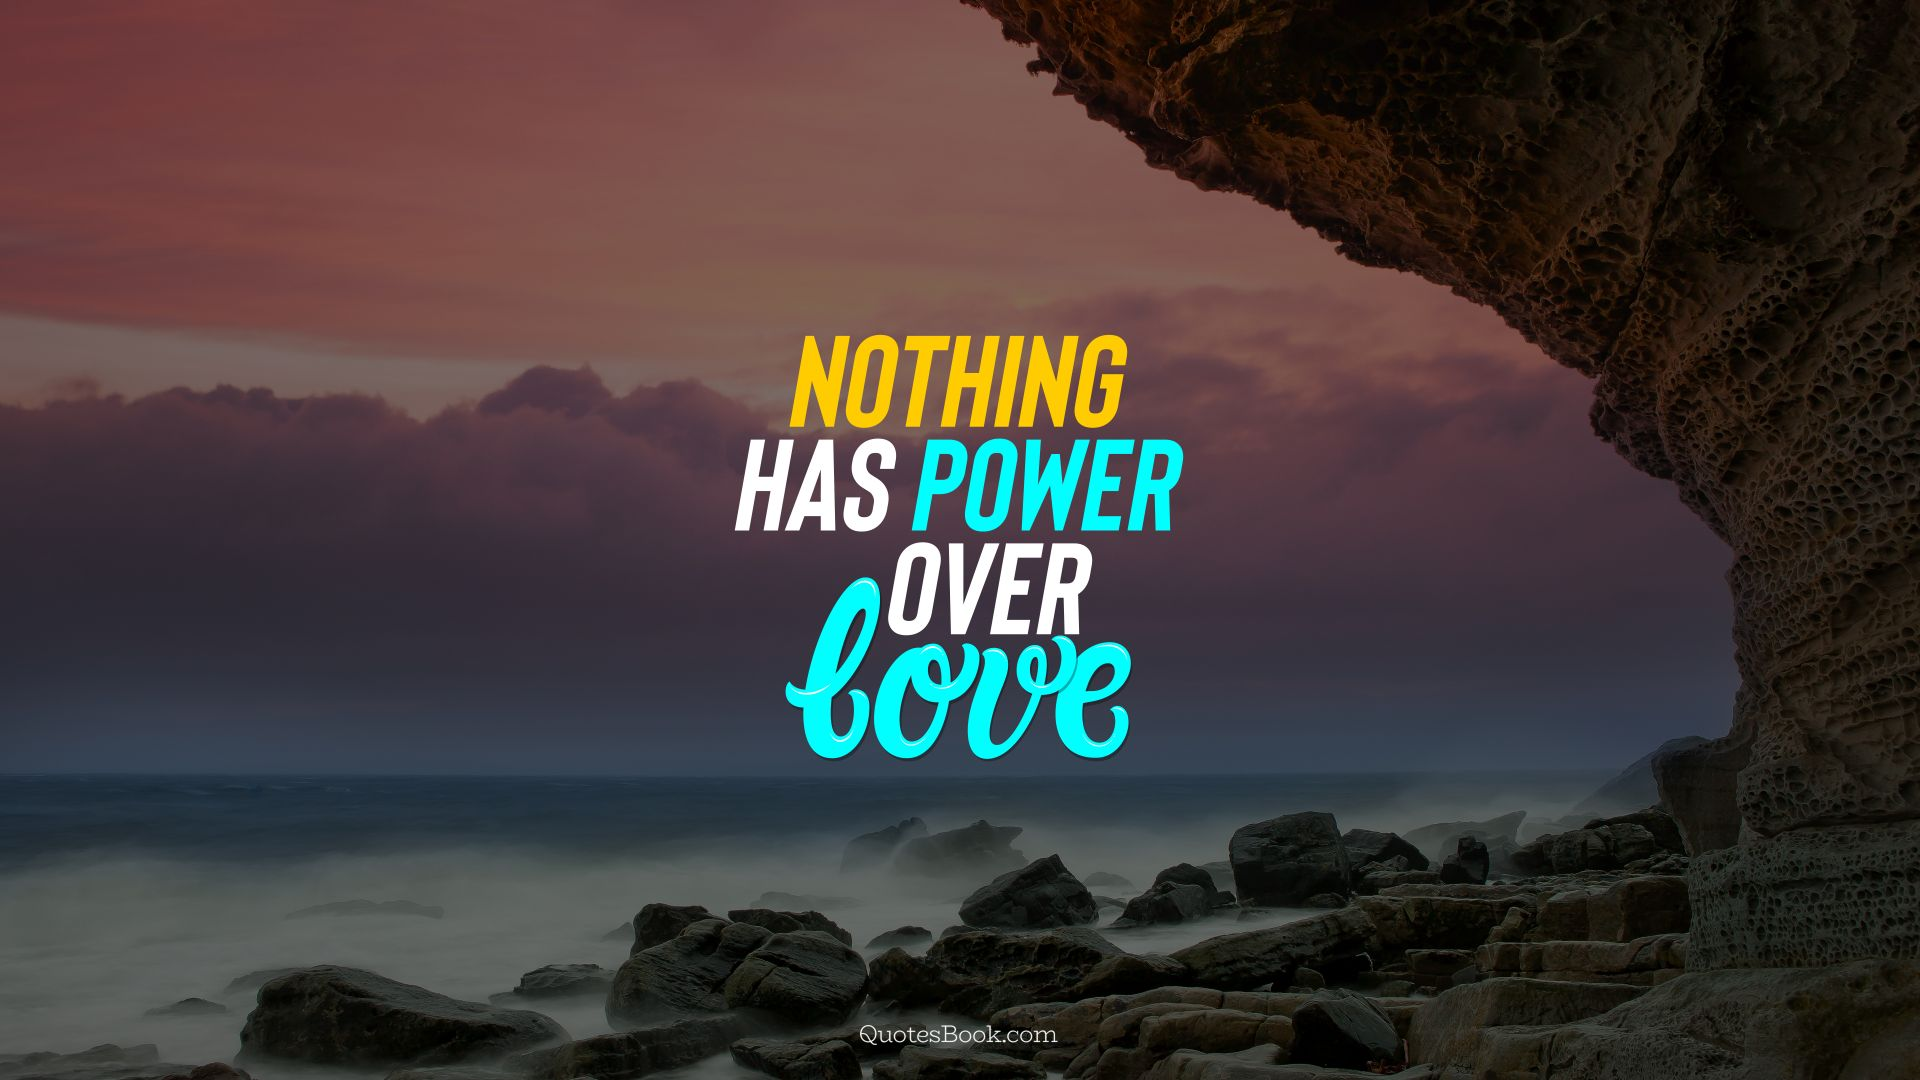 Nothing has power over love. - Quote by QuotesBook